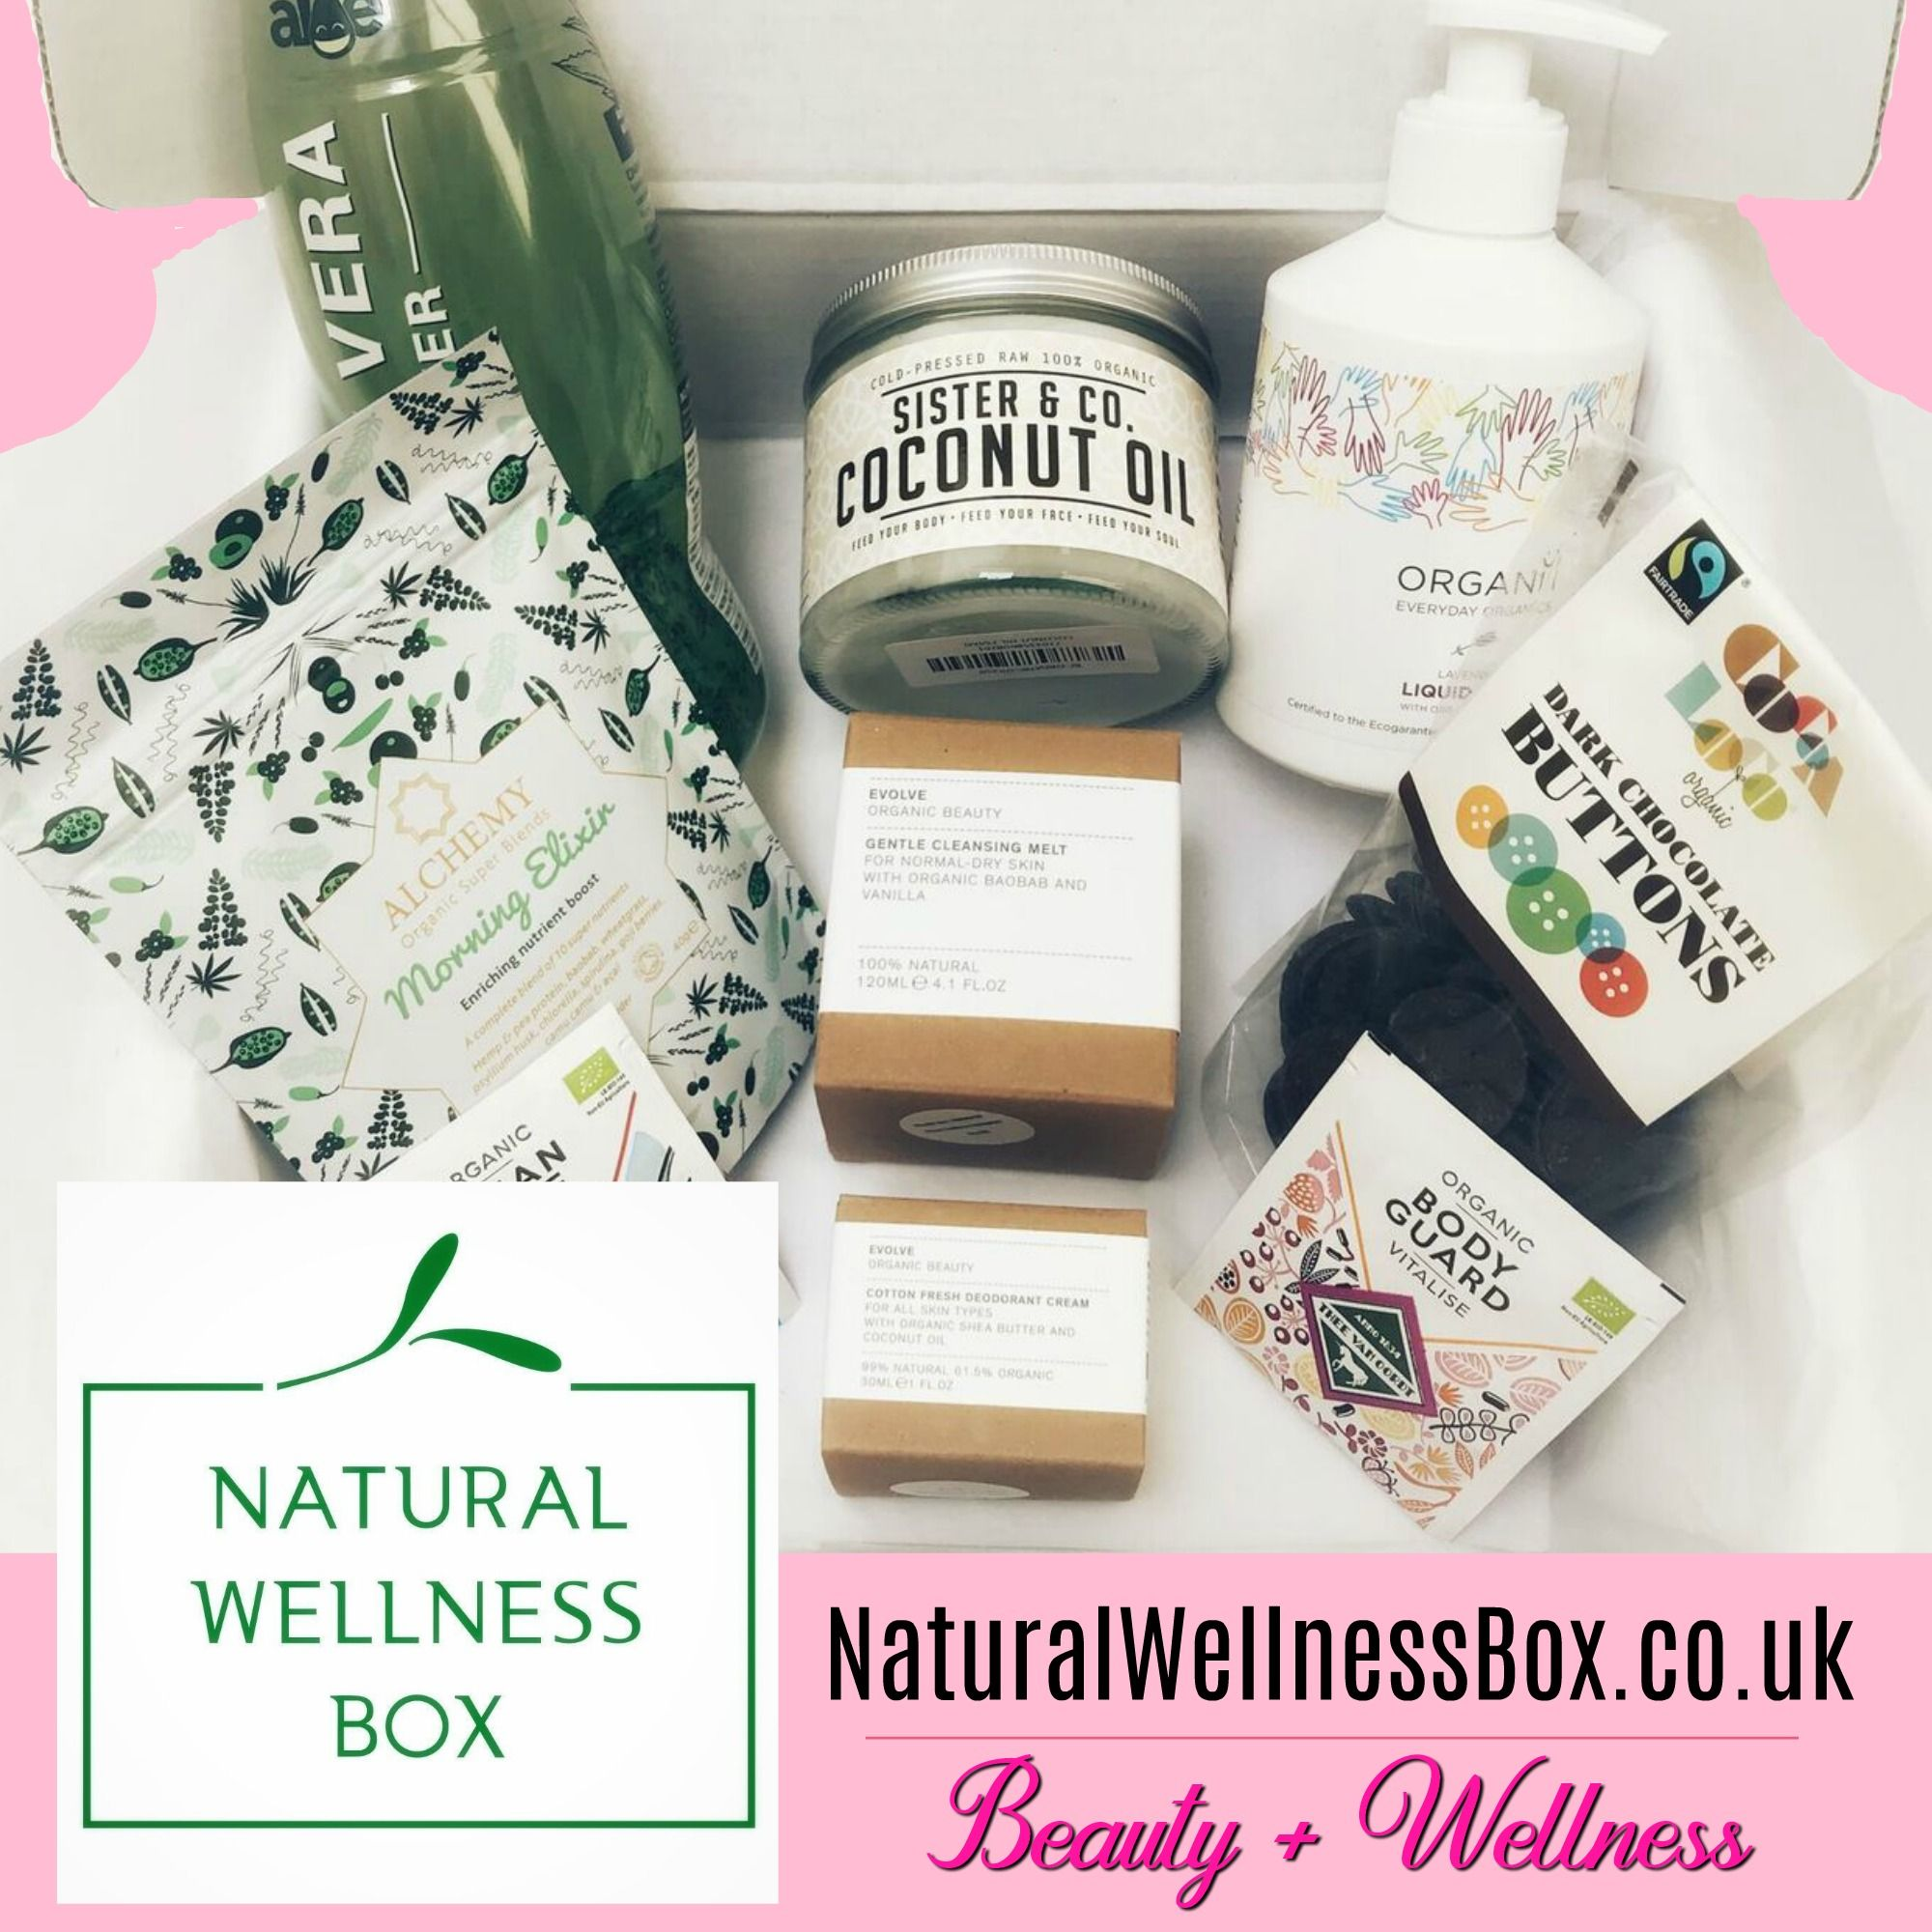 Natural Wellness Box Wellness Products Delivered To Your Home